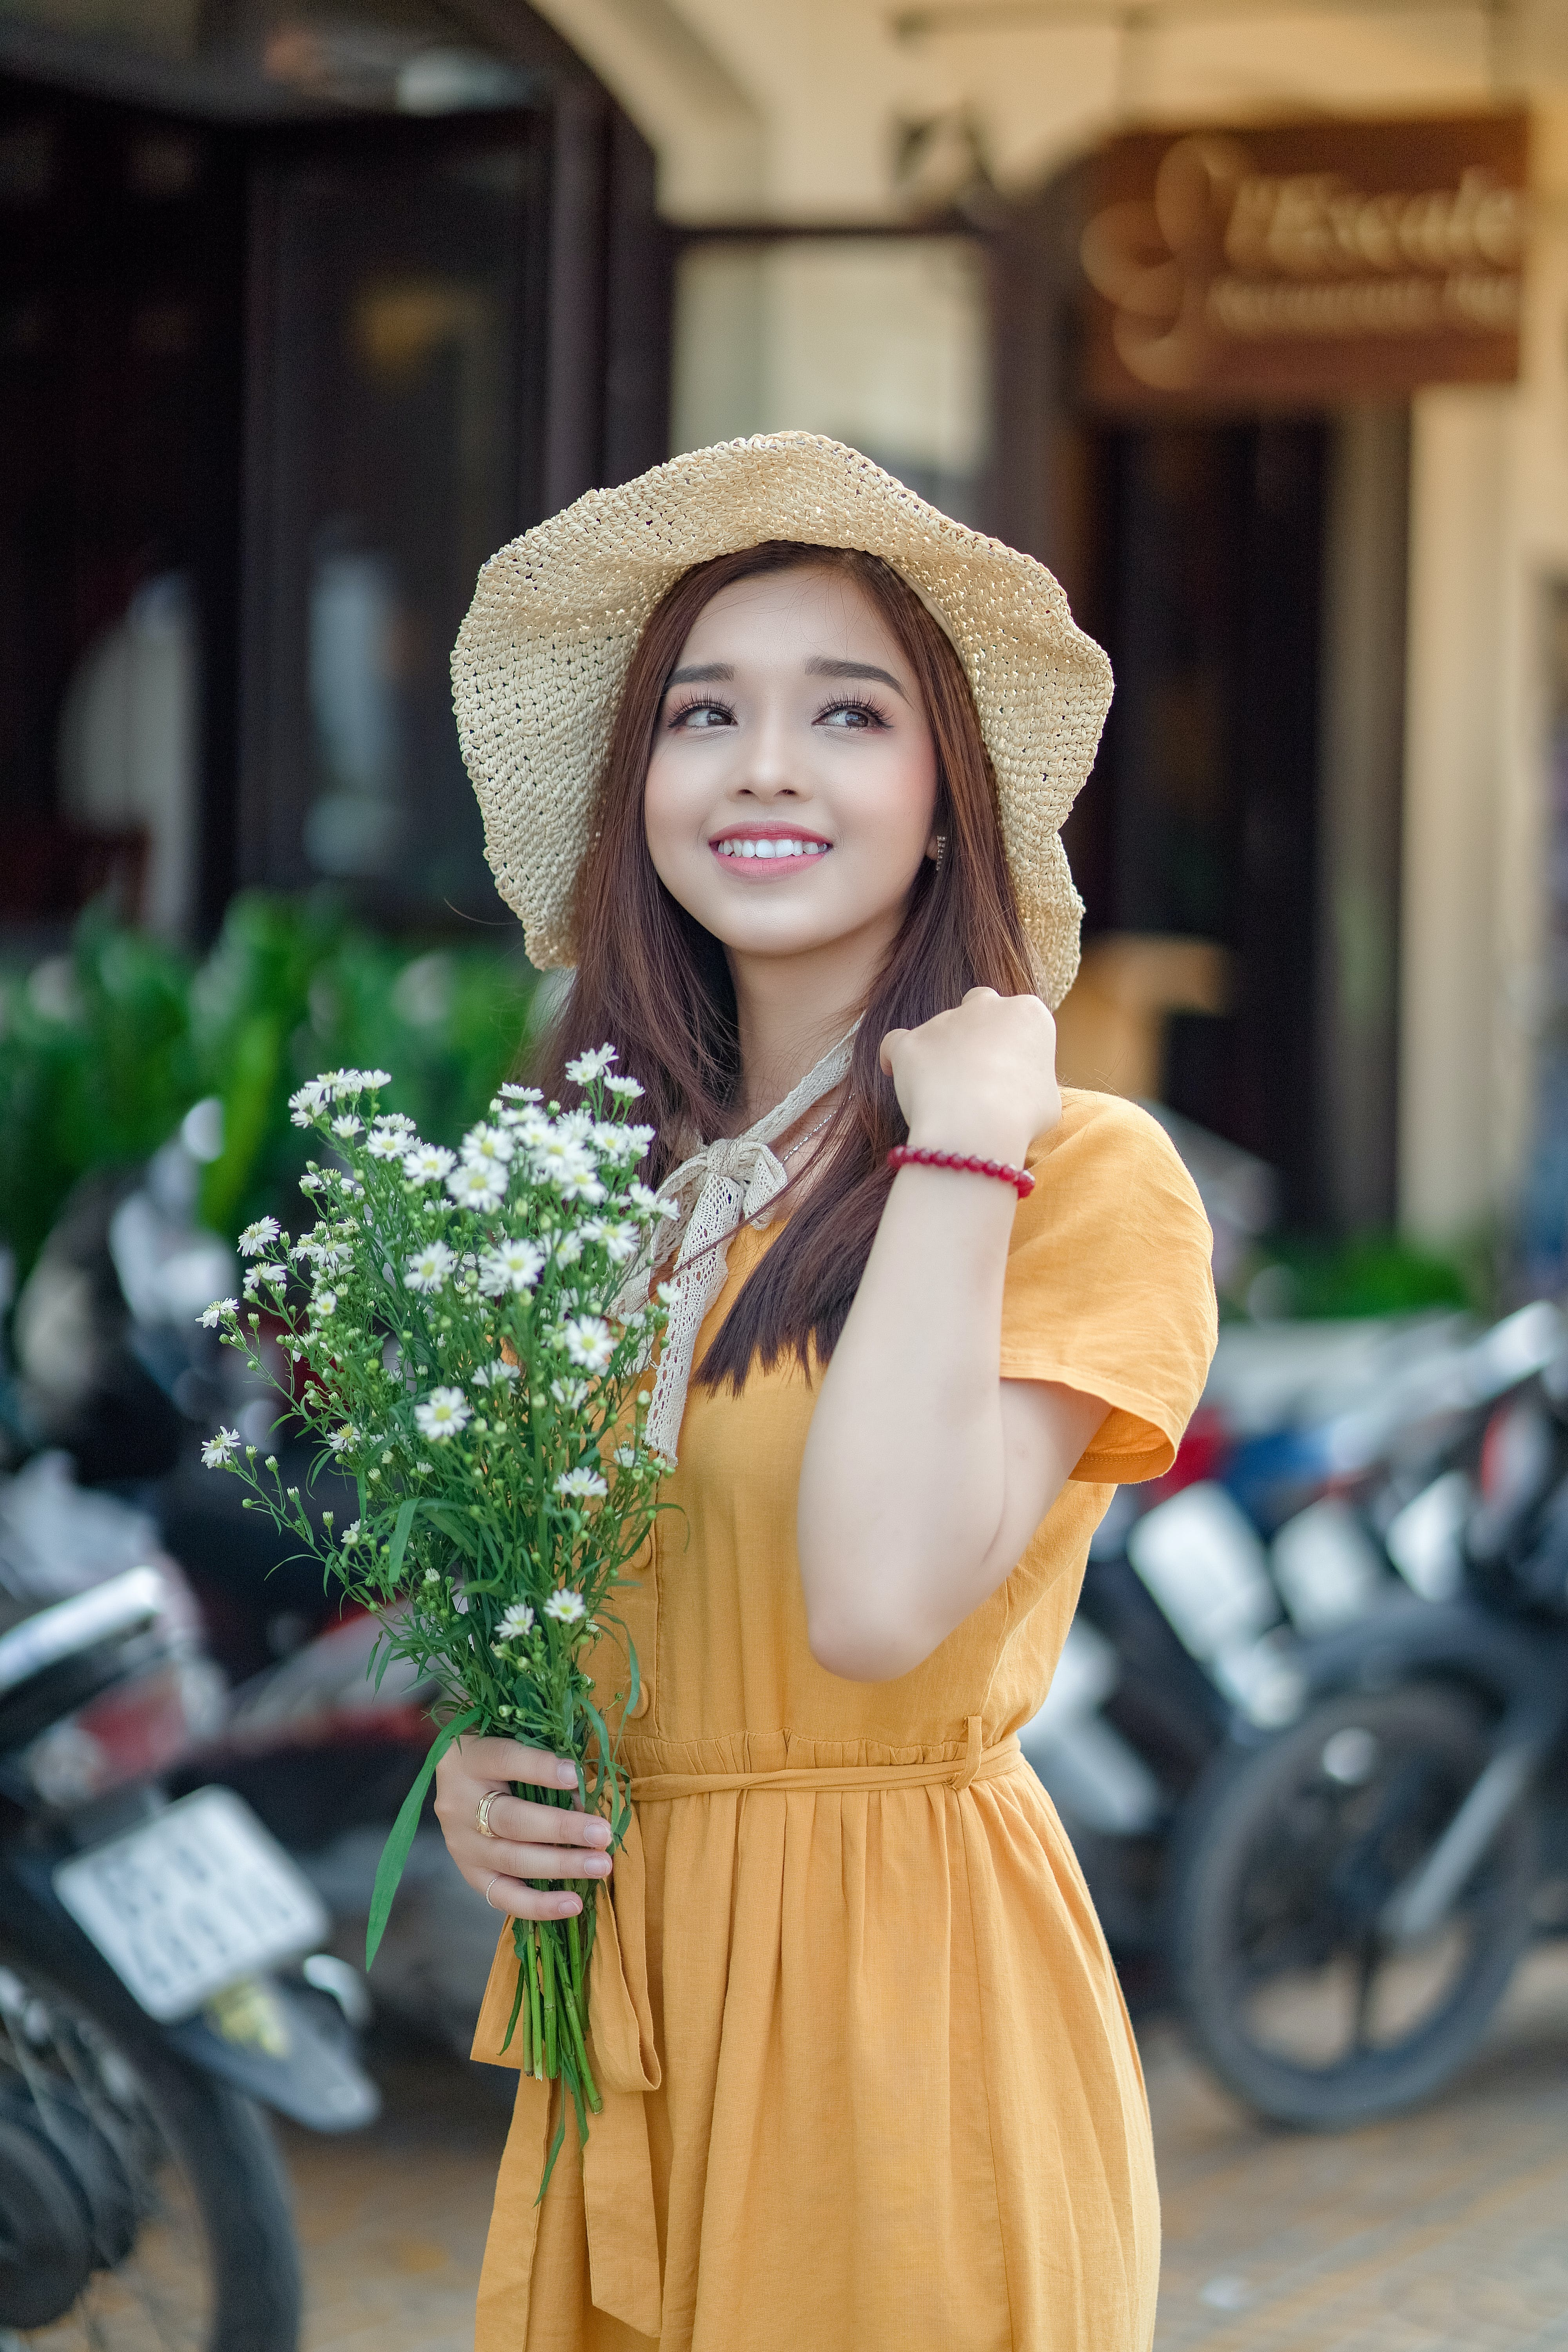 Selective Focus Photo Of A Woman Holding Flowers